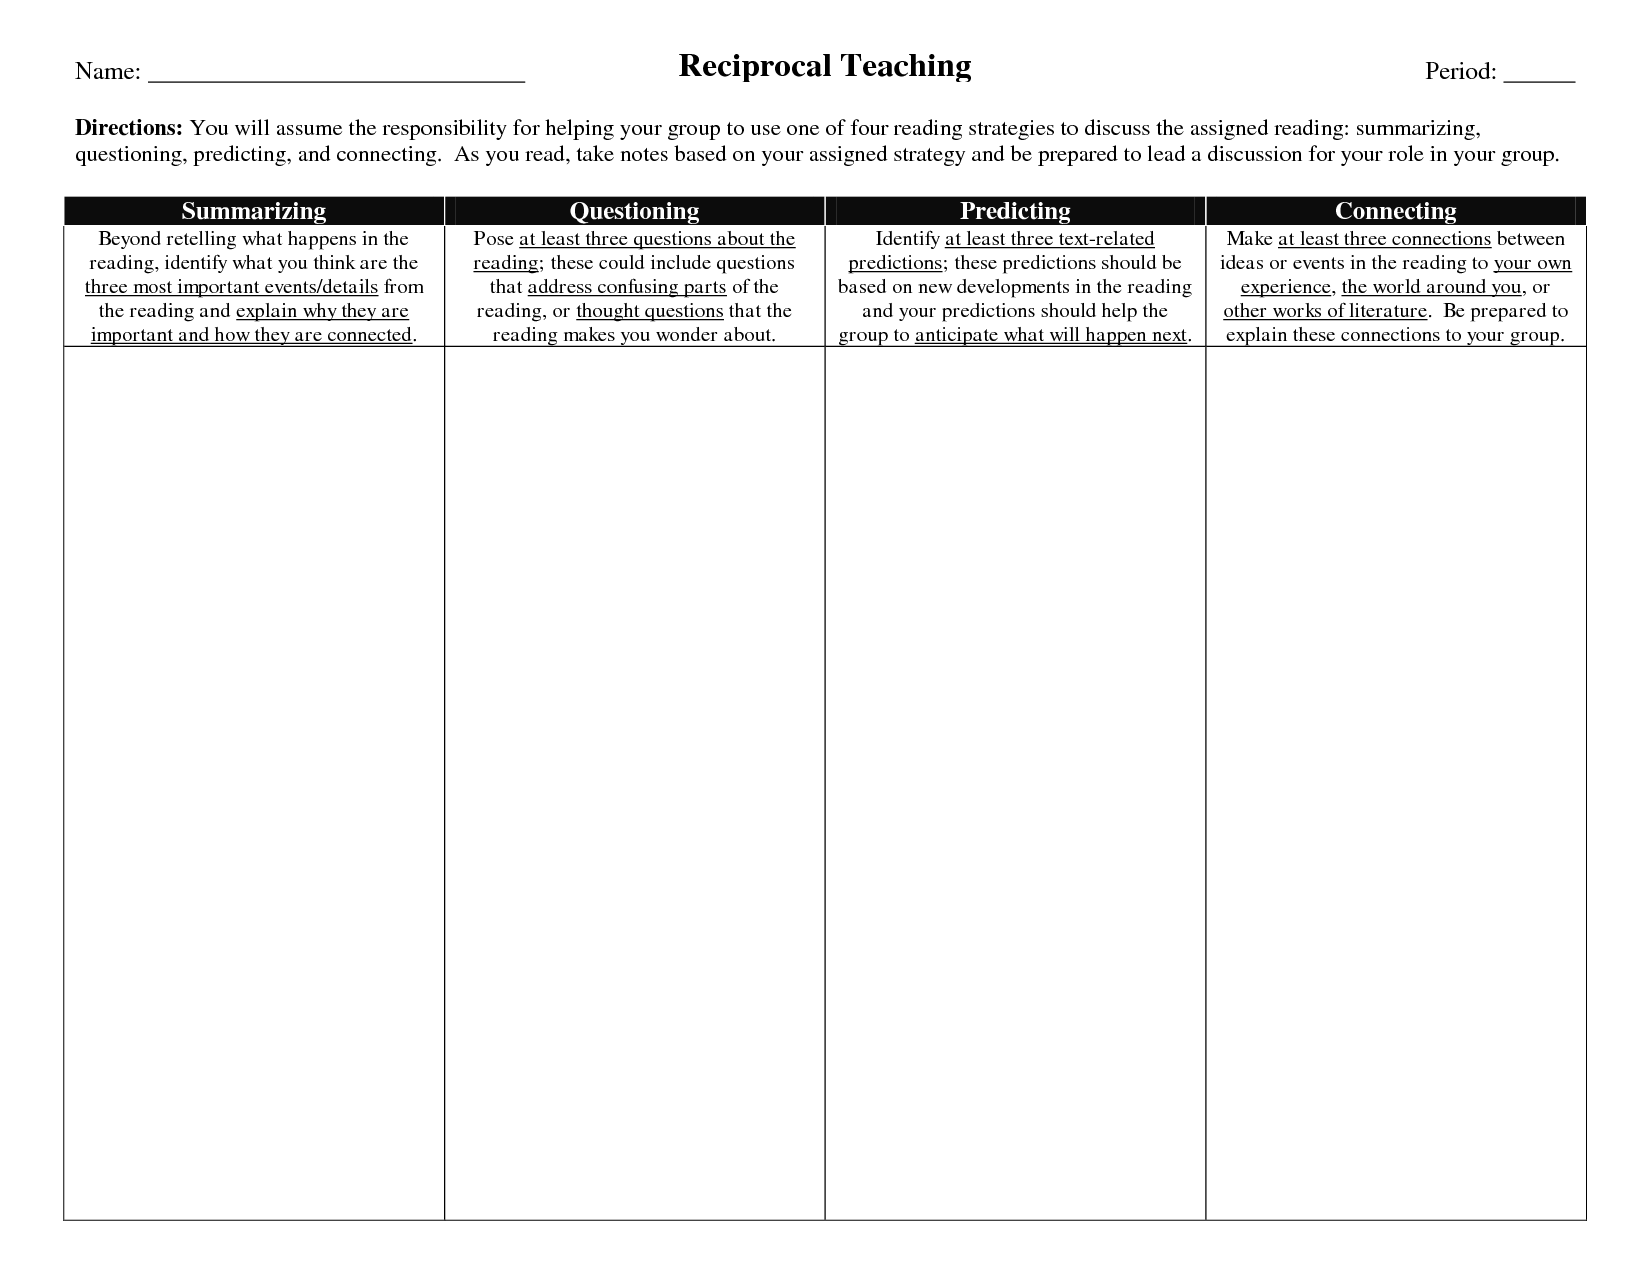 Worksheets Reciprocal Teaching Worksheet 15 graphic organizers for teachers images teaching organizers